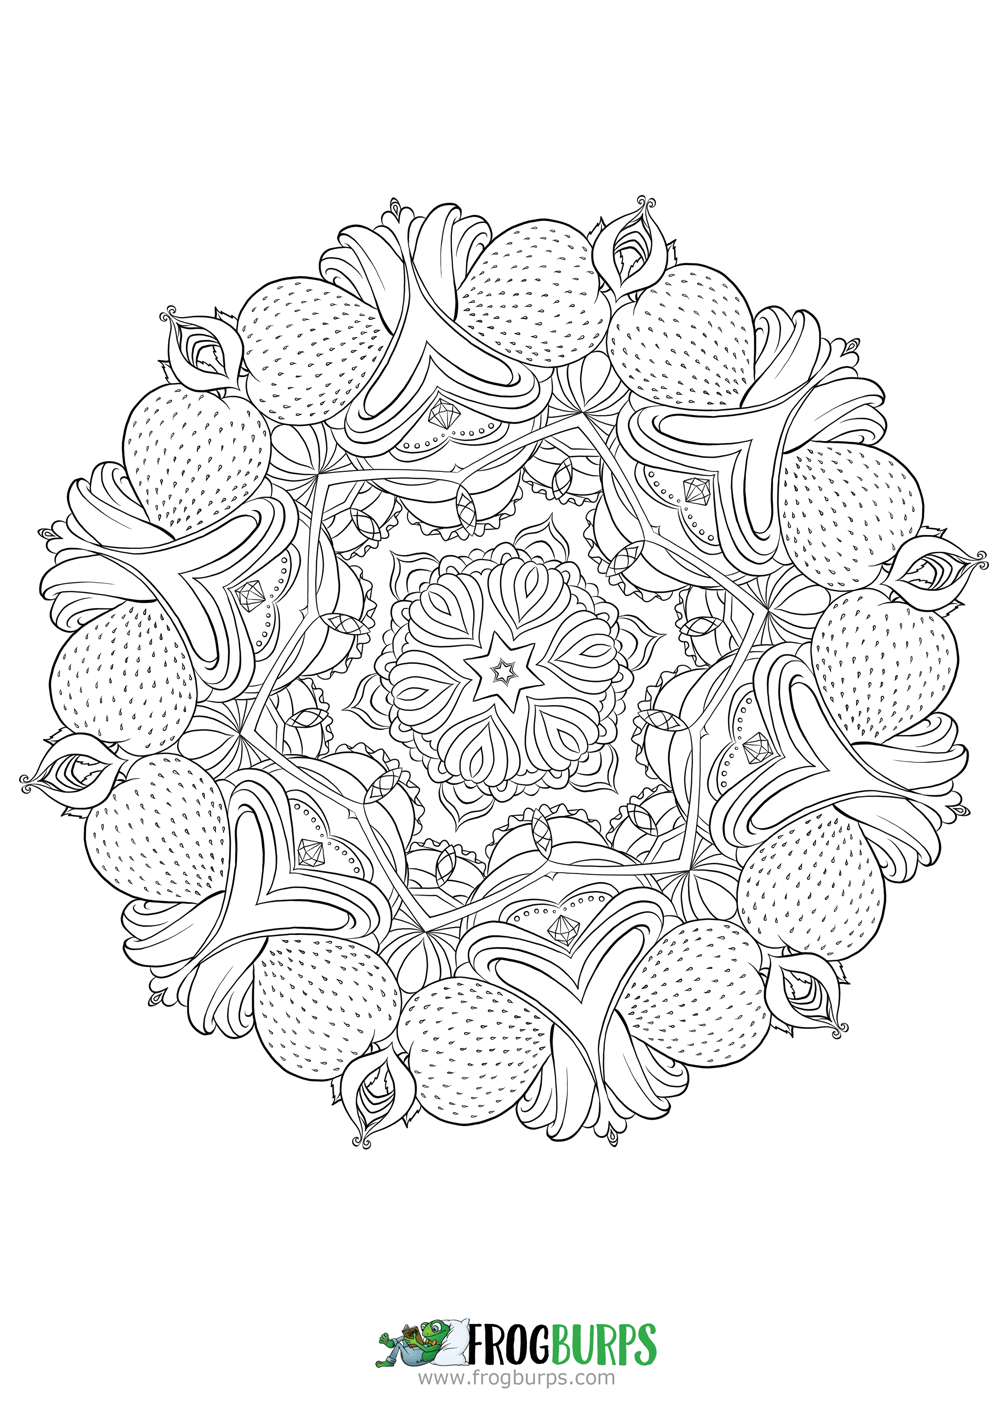 strawberry mandala coloring page frogburps coloring pages